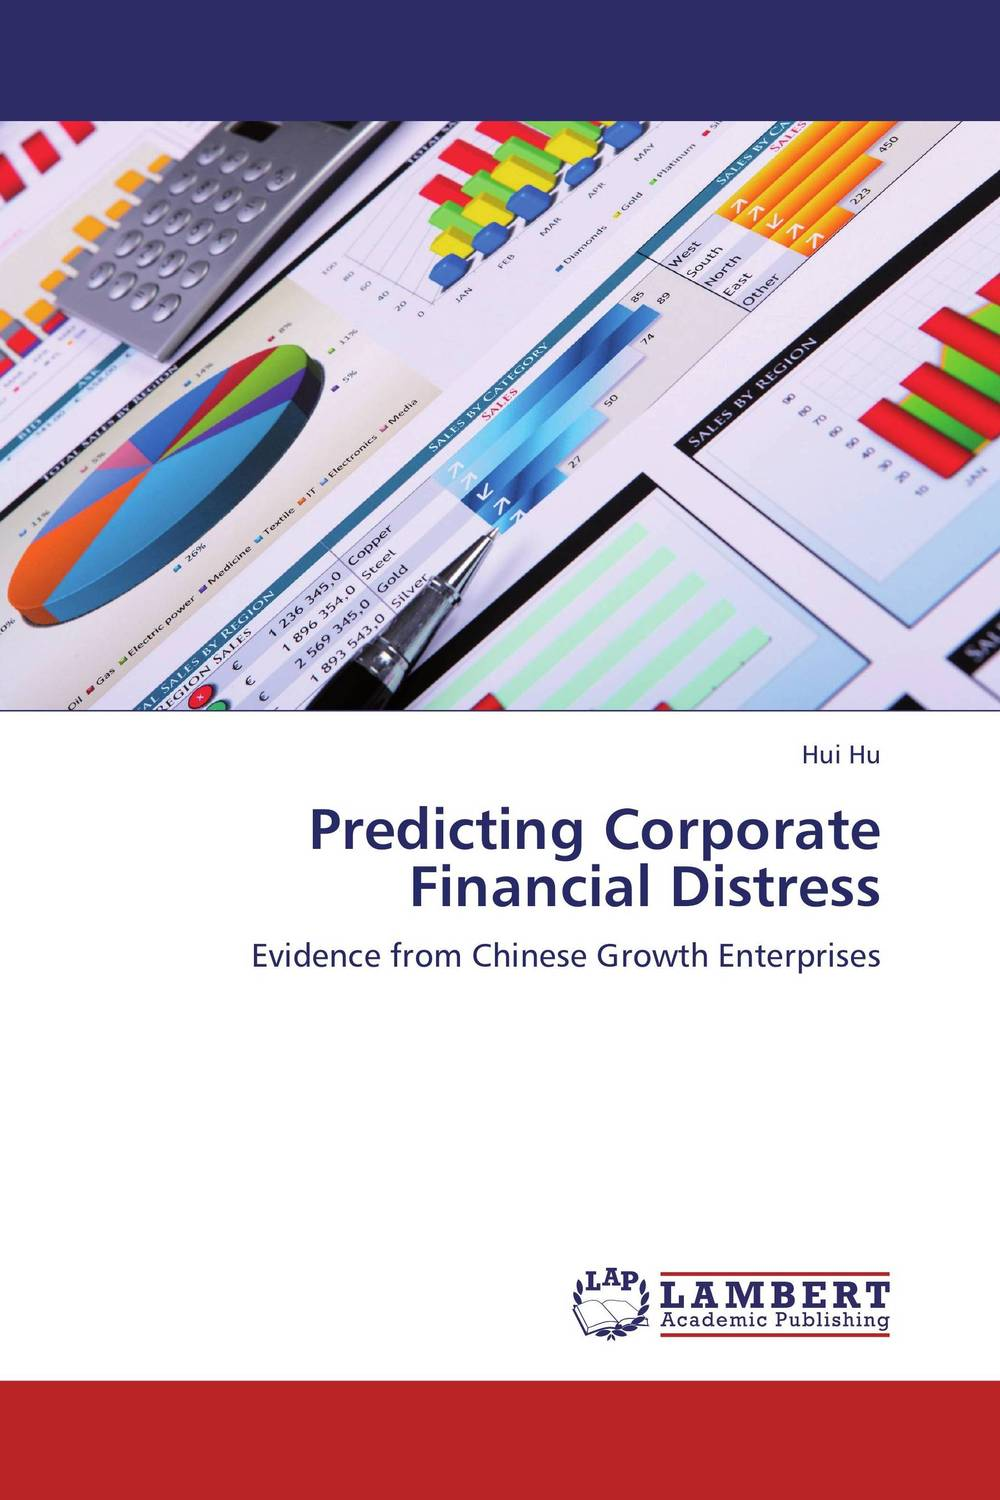 Predicting Corporate Financial Distress edith hotchkiss corporate financial distress and bankruptcy predict and avoid bankruptcy analyze and invest in distressed debt